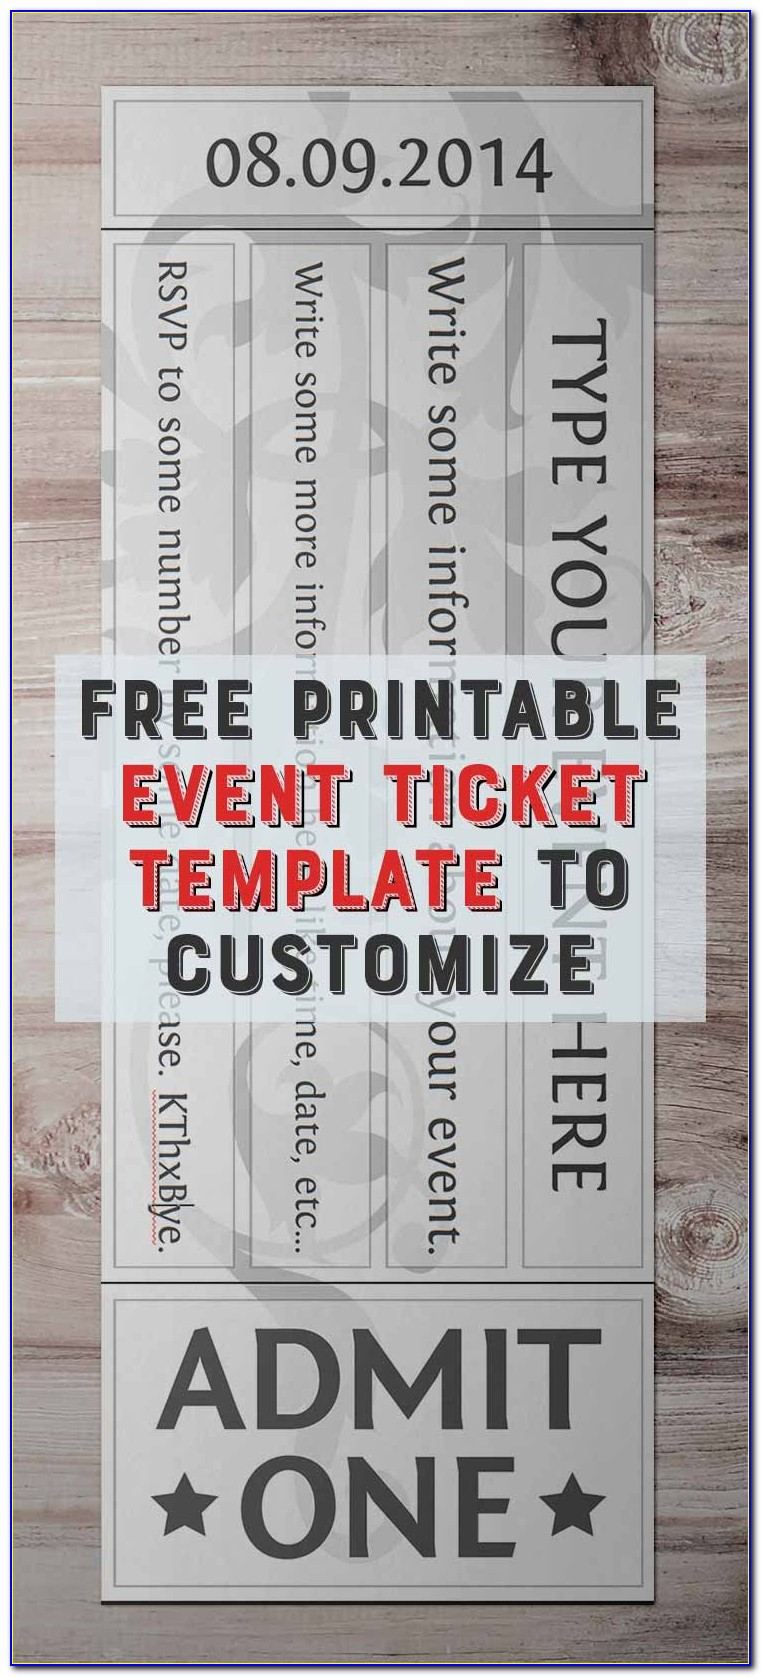 Free Printable Event Ticket Template